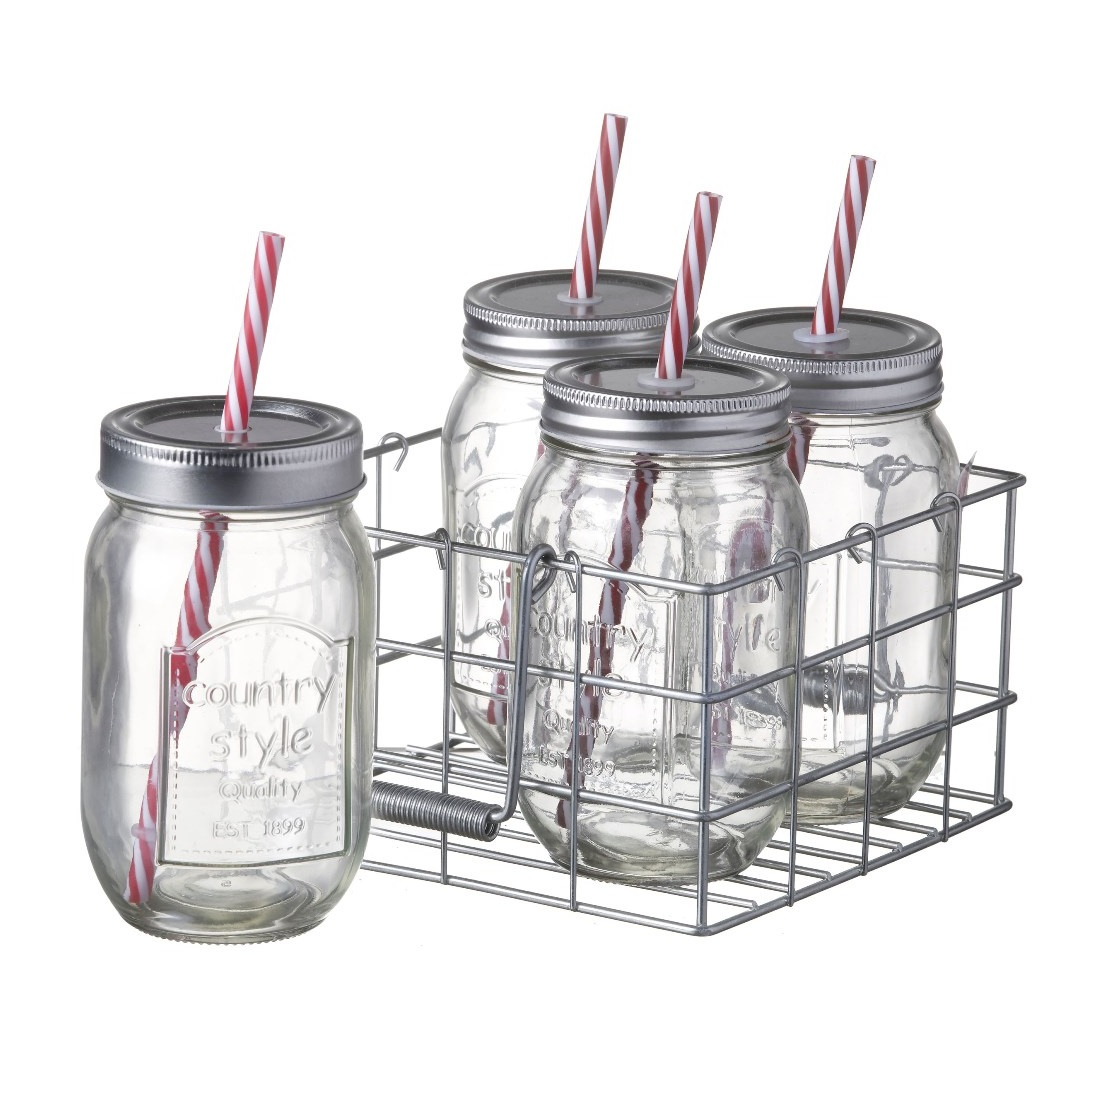 4 Jam Glass Jars with Straw in Wire Metal Basket Holder